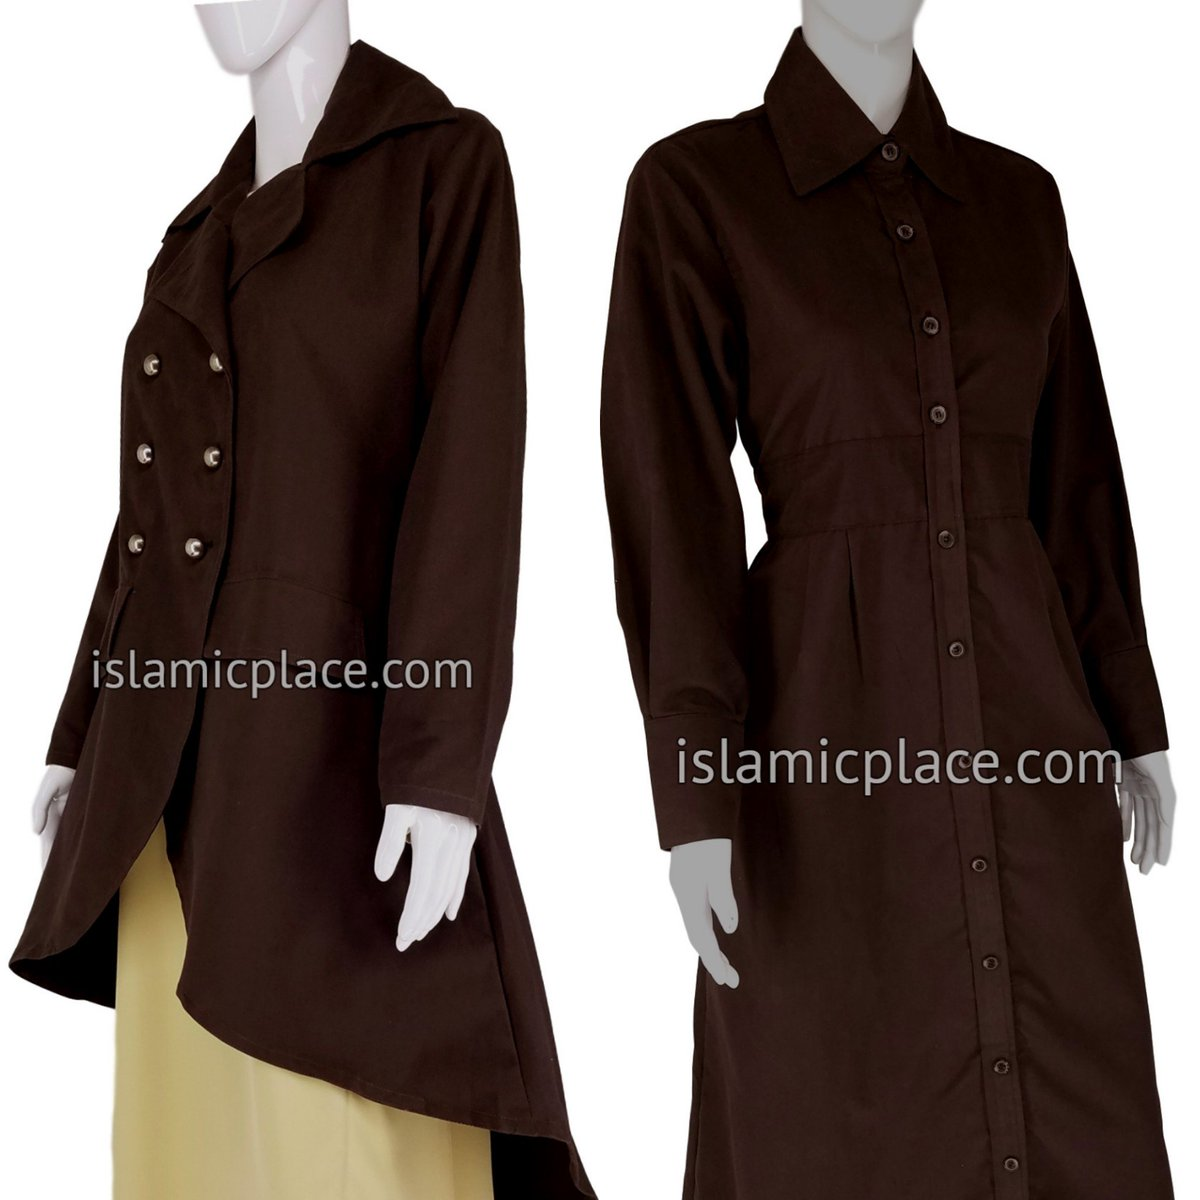 a78994b78650 #NewArrival #CORDUROY #ABAYA & #COAT now available online:  (https://goo.gl/xzDzb4 ) and in store! Limited quantities! #BintQ  #IslamicPlacepic.twitter.com/ ...